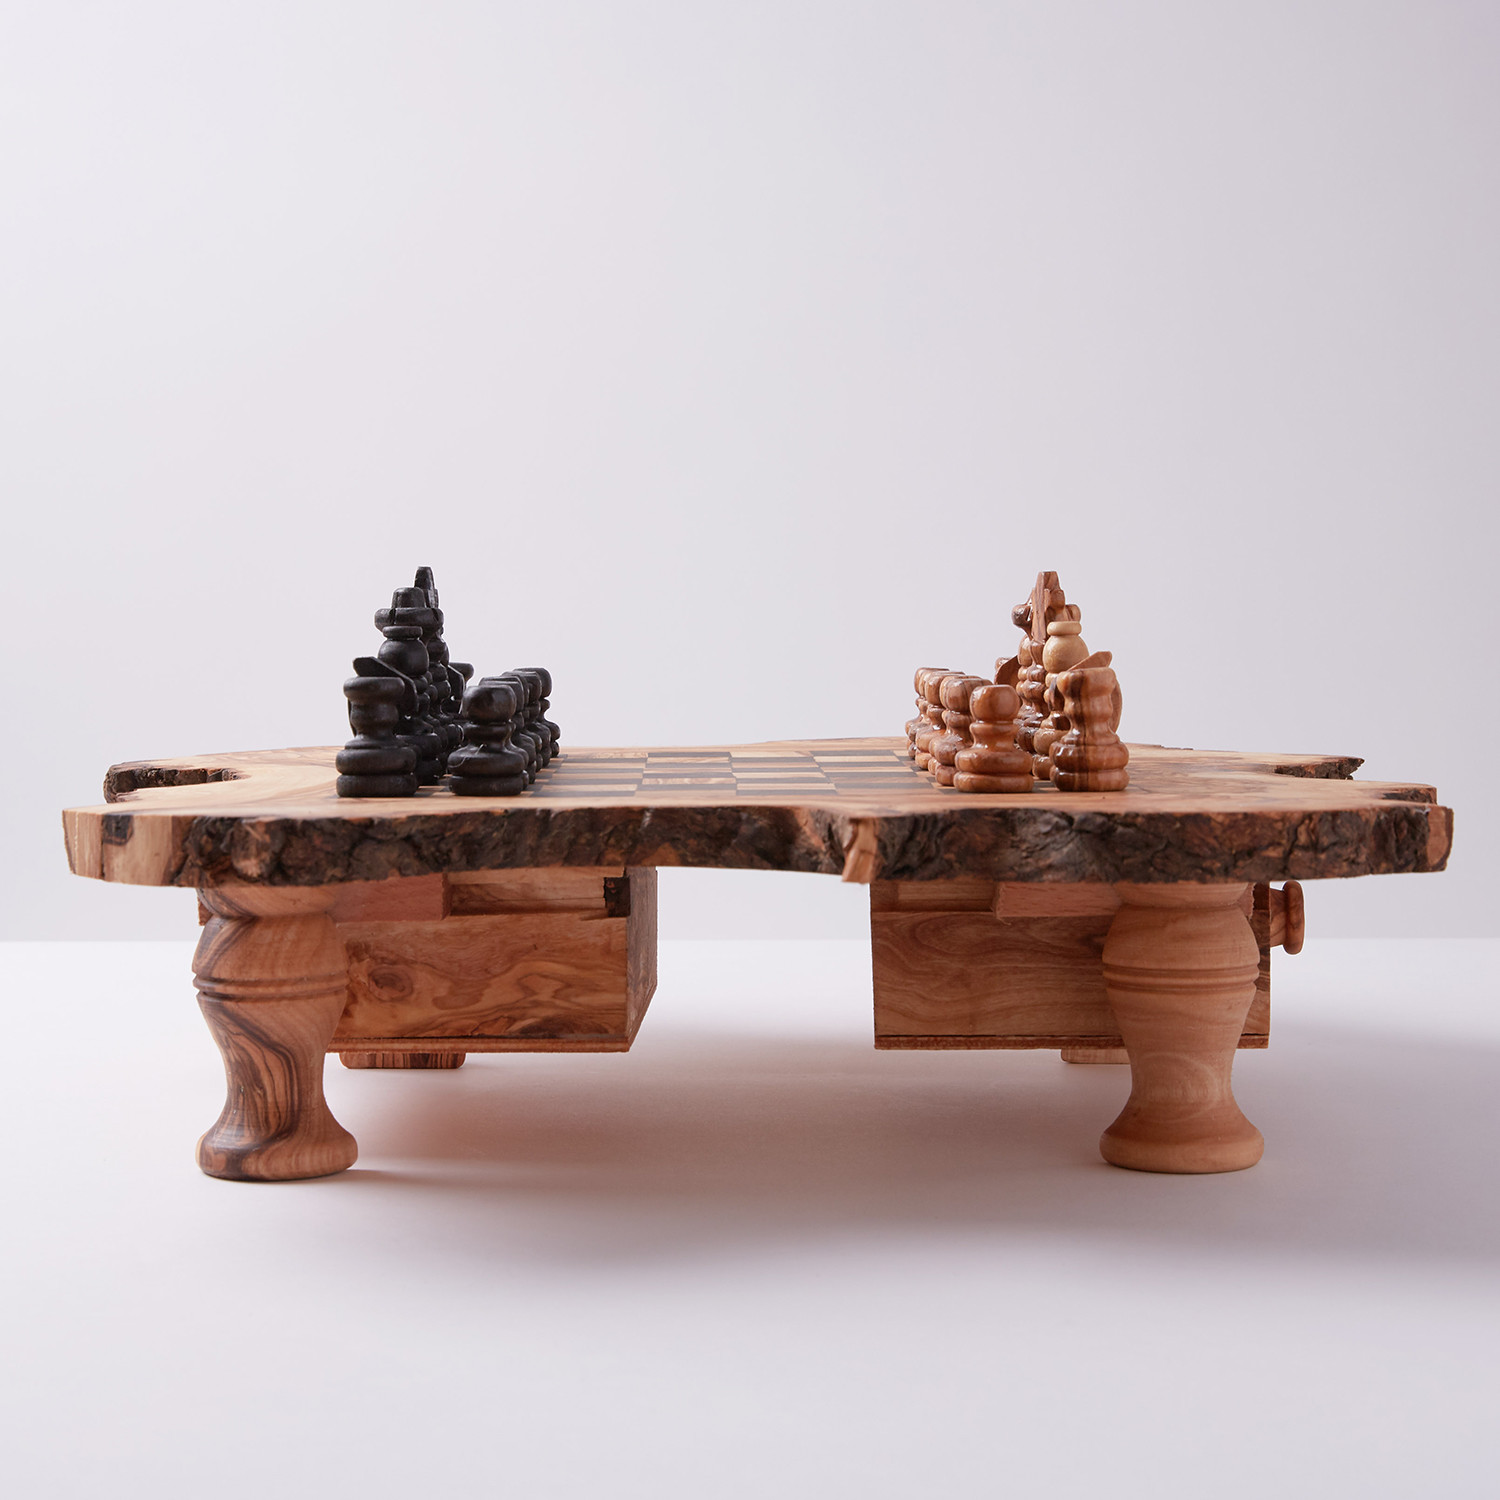 Rustic Chess Set Beldinest Touch of Modern